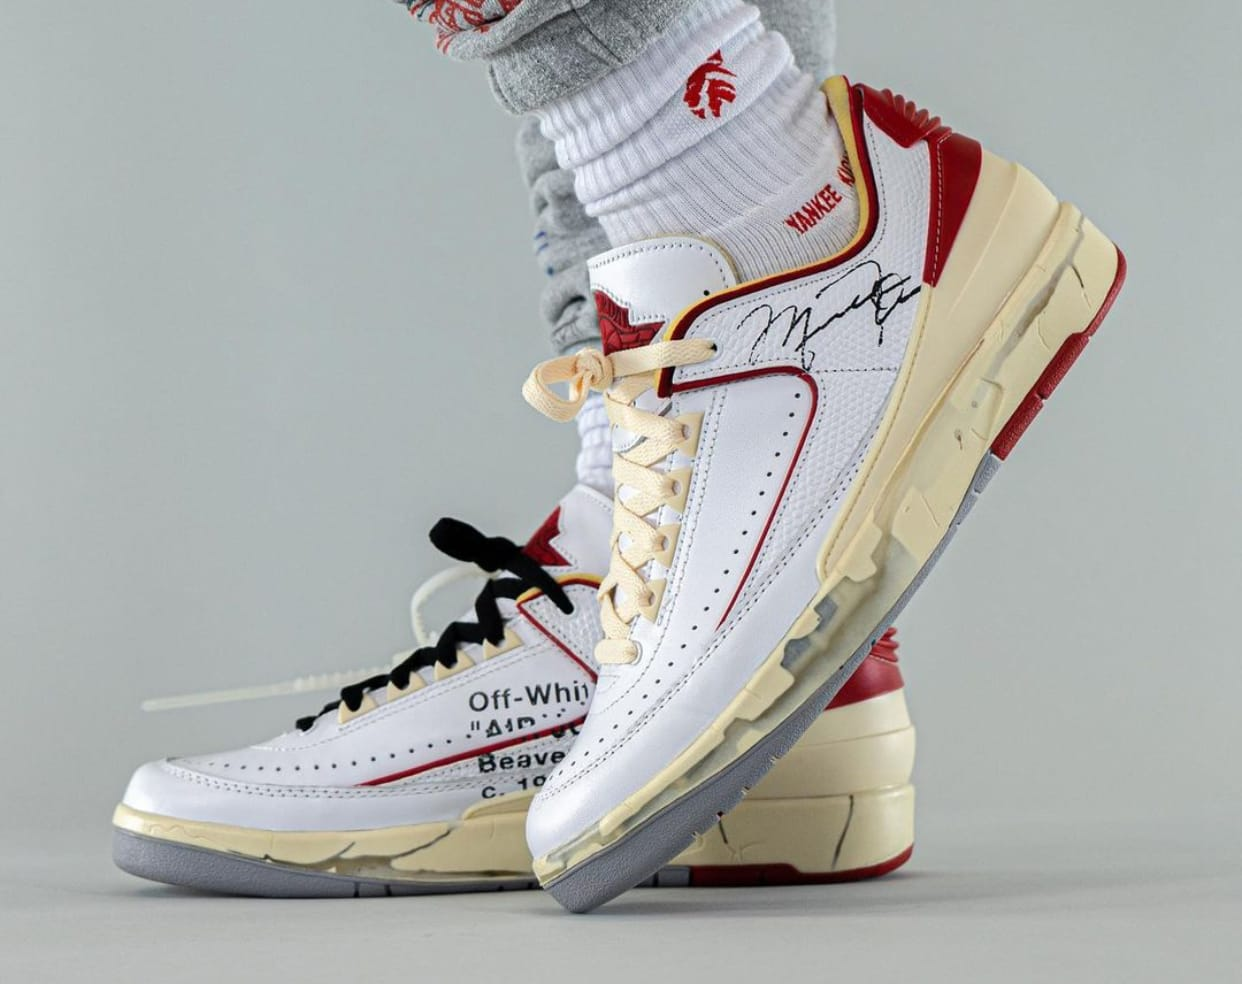 Off-White x Air Jordan 2 Low DJ4375-106 lateral on foot